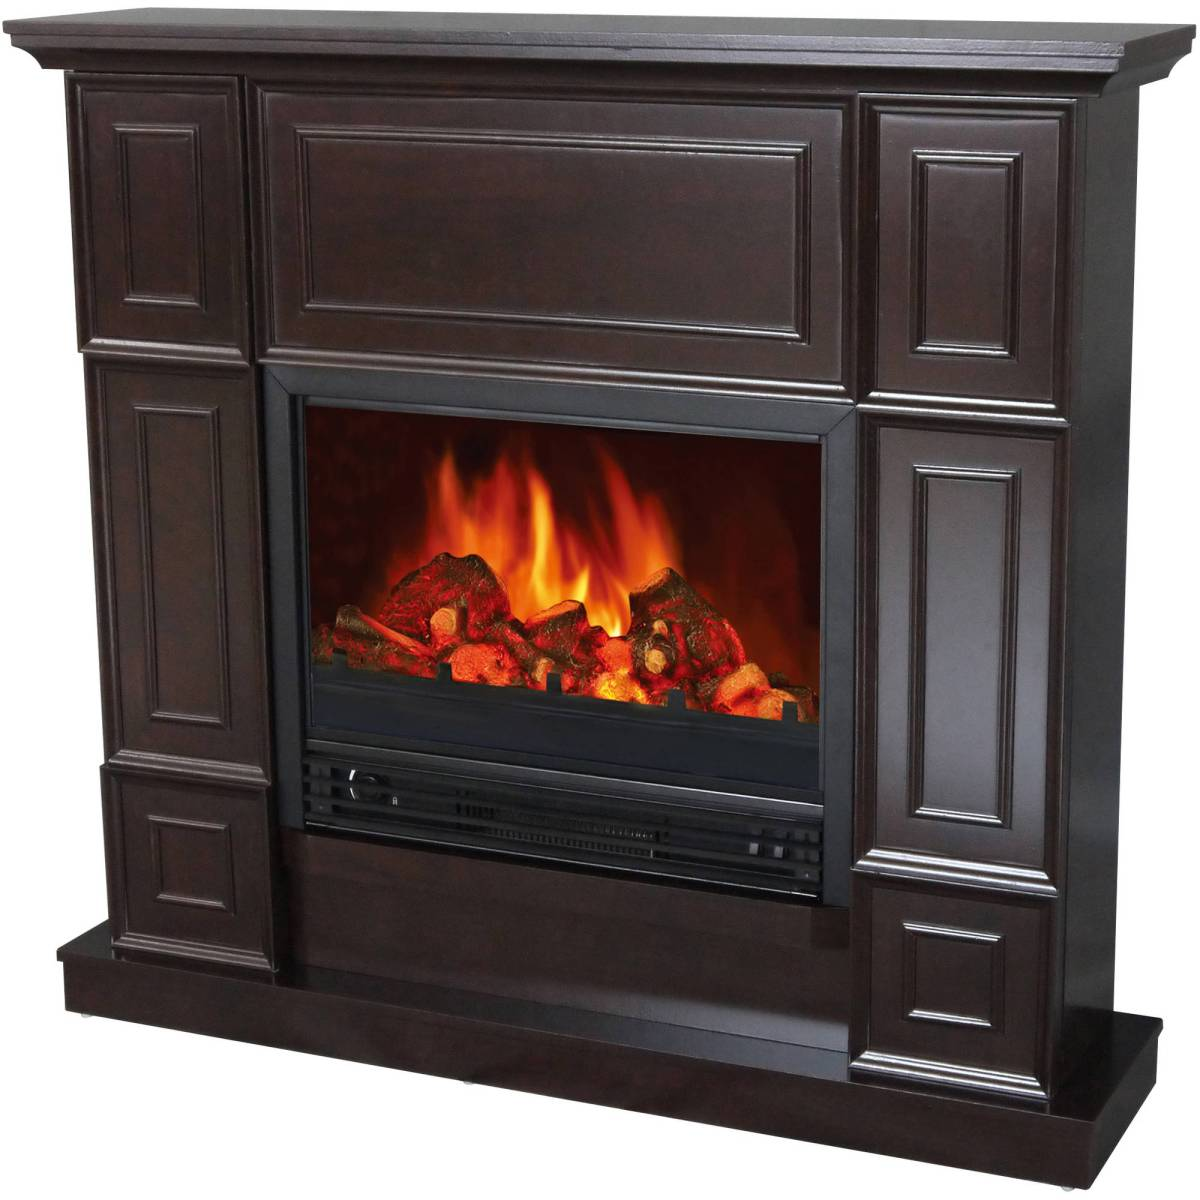 """VIPortal INC on Twitter: """"Decor-Flame electric fireplace space"""